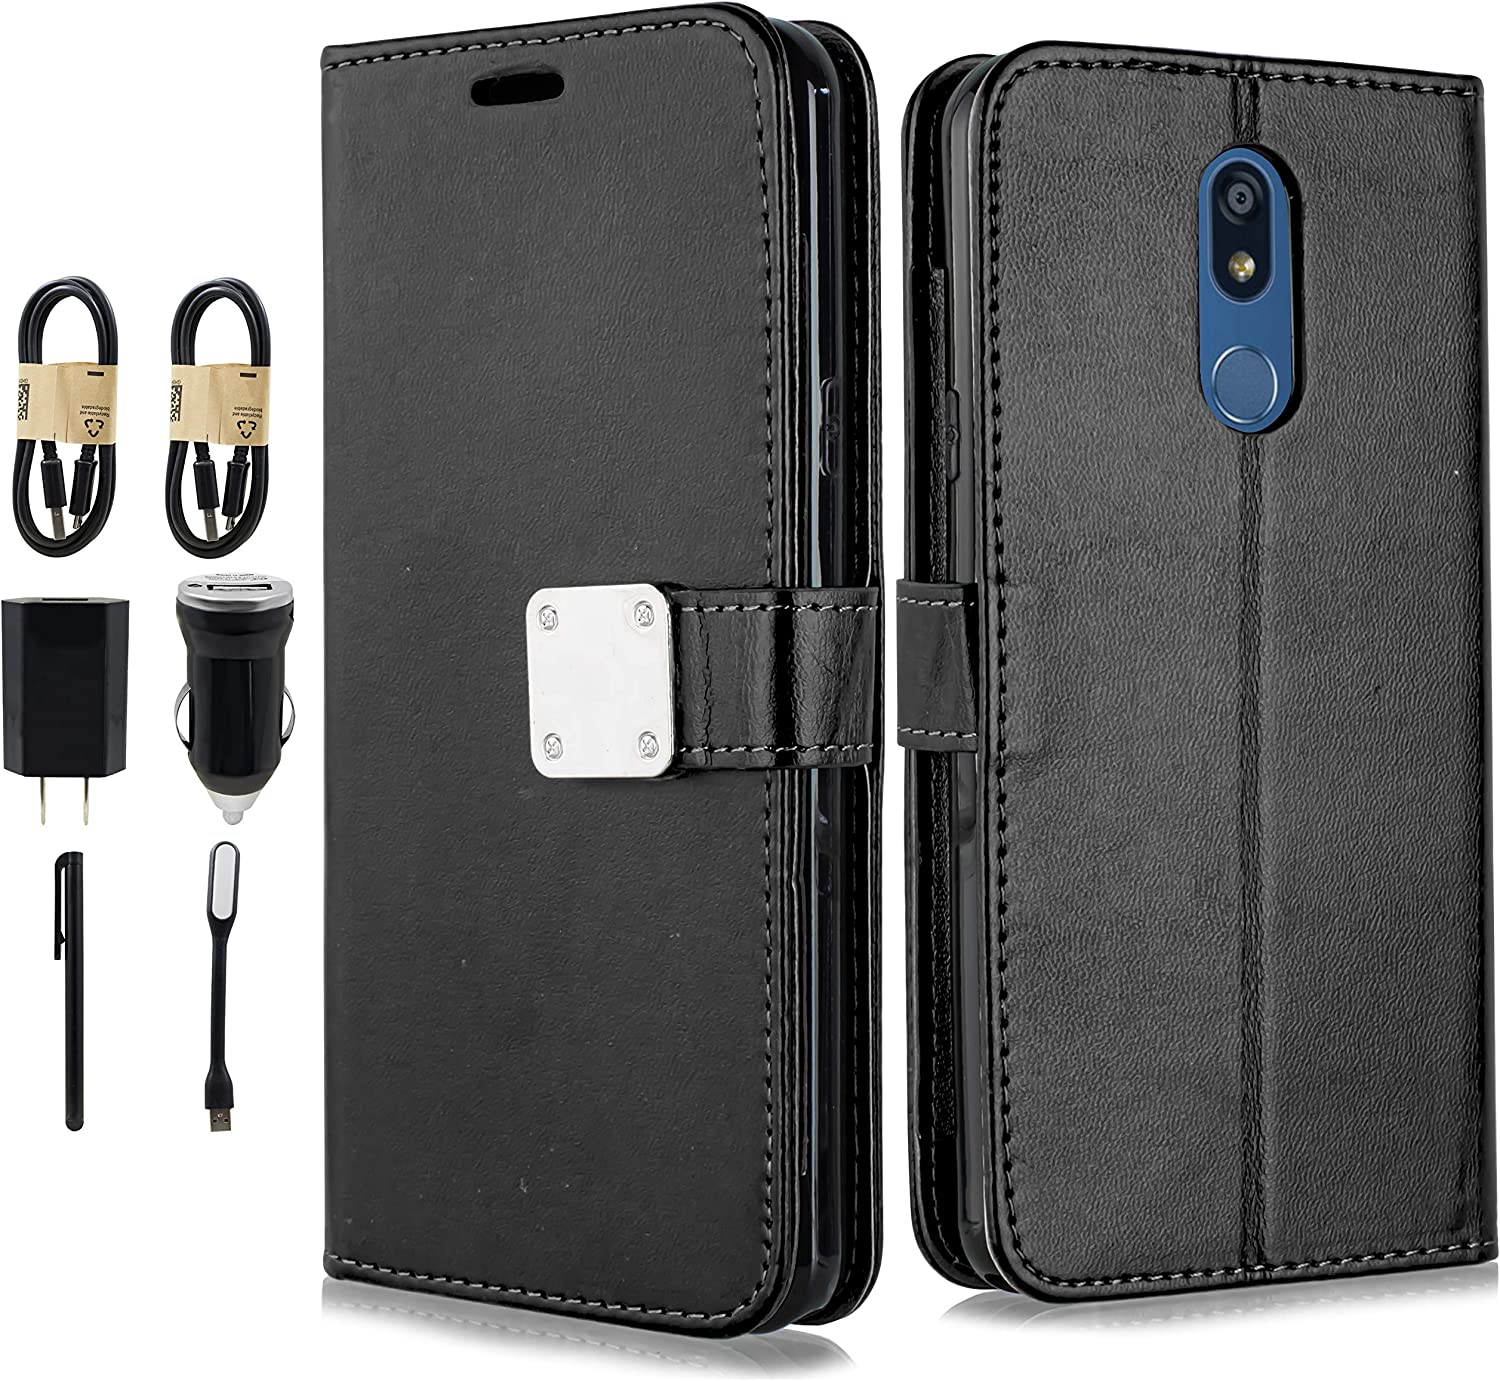 LG K40 Case Red The Grafu Shockproof Flip Folio PU Leather Wallet Cover for LG K40 Book Style Case with Card Holder and Magnetic Closure